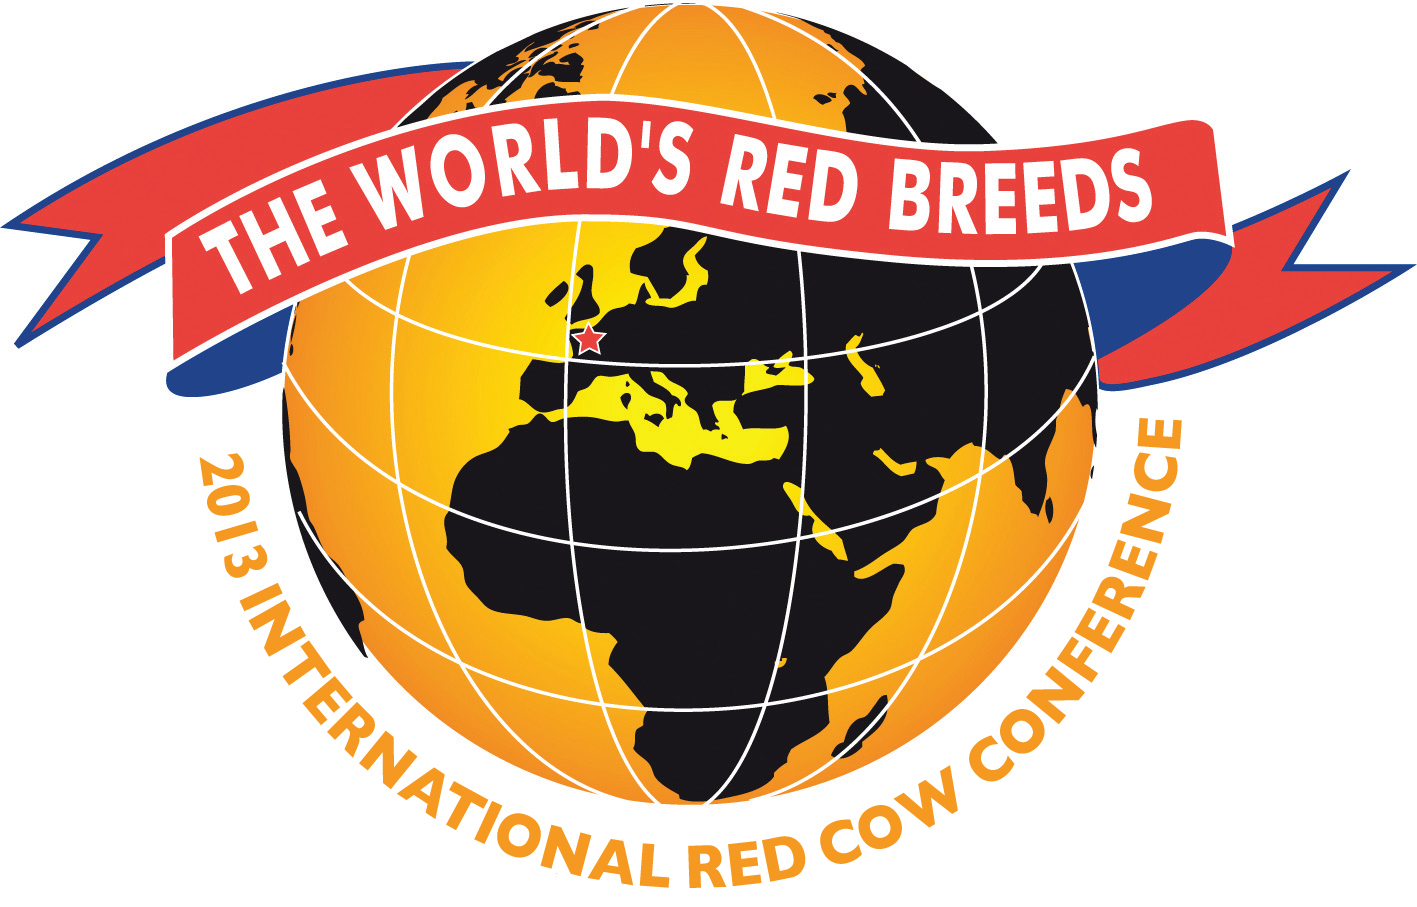 International Red Dairy Breed Federation (IRDBF)